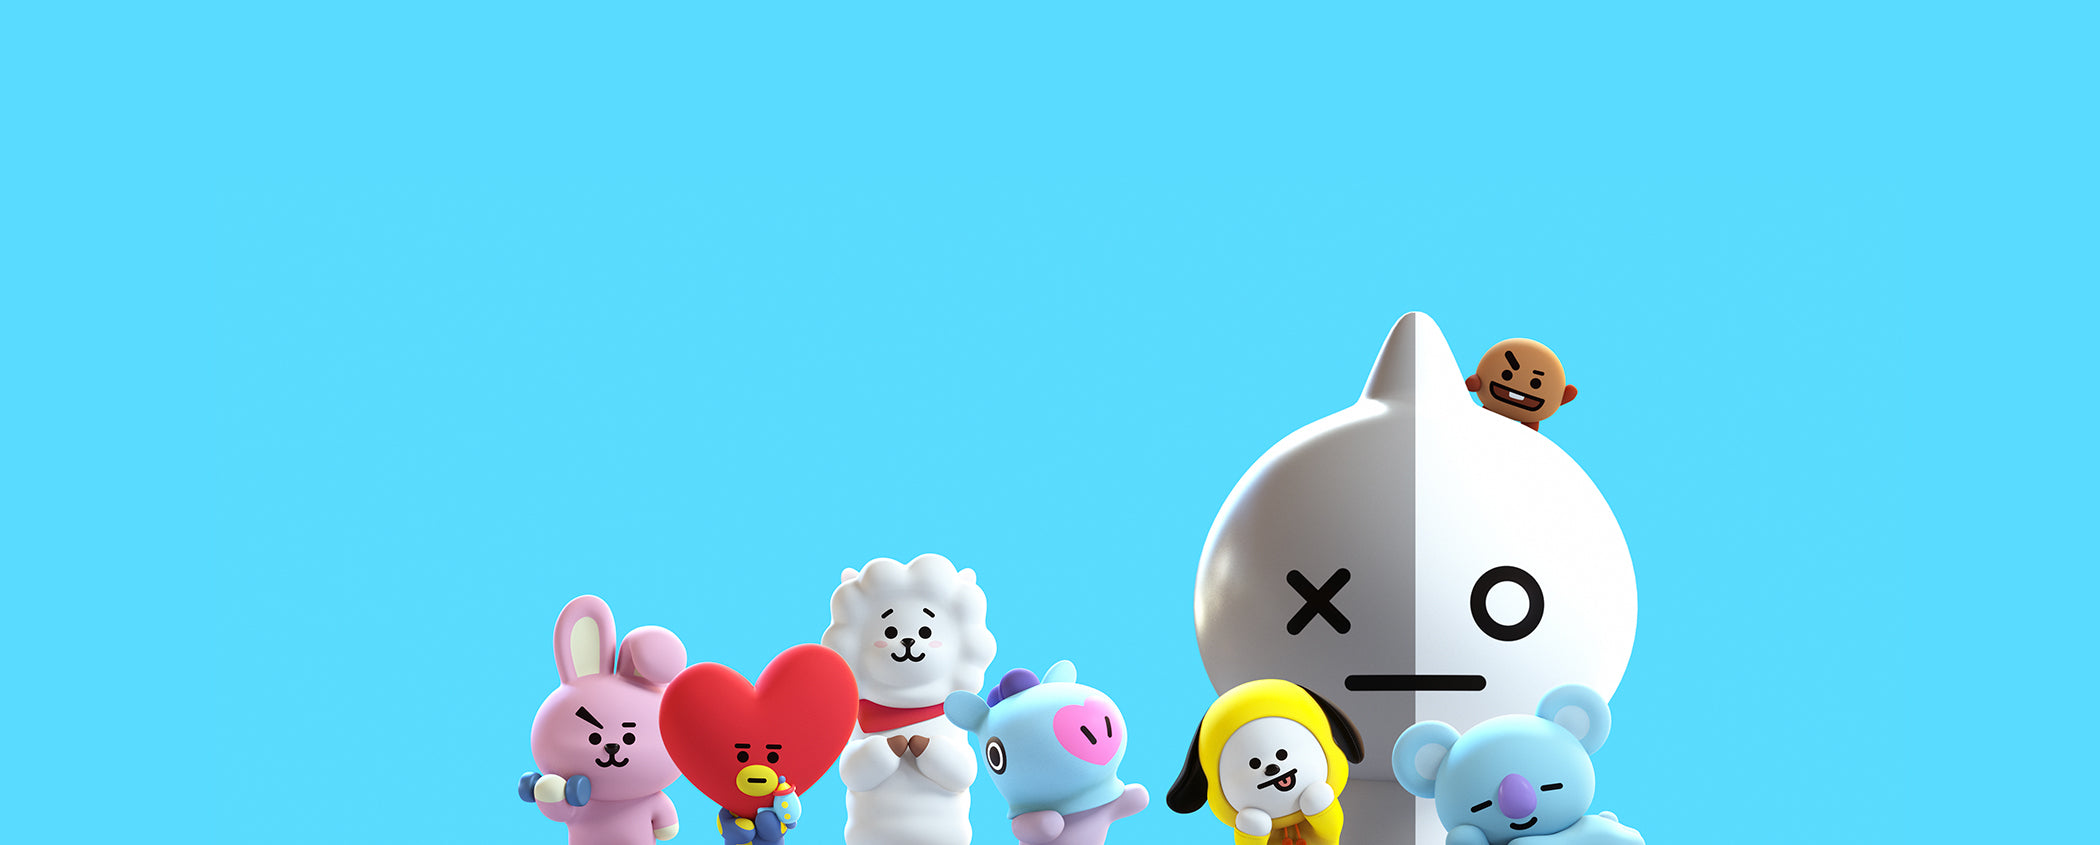 SPACE STAR BT21